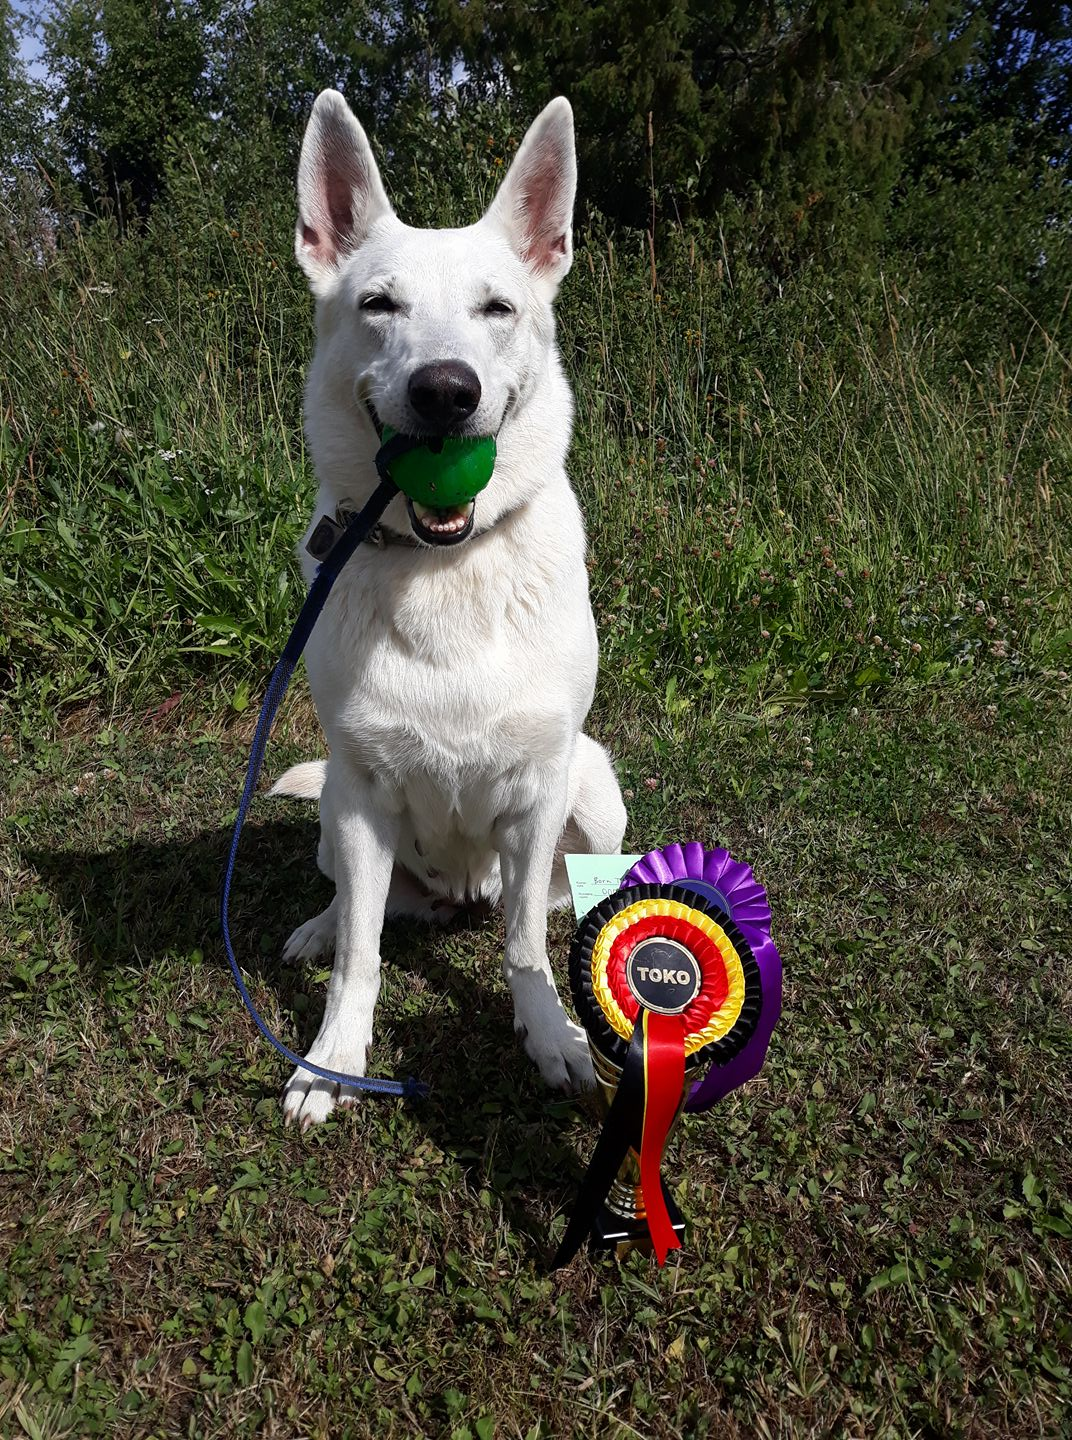 Born to Win White Oodi in Obedience Competition in Finland 6